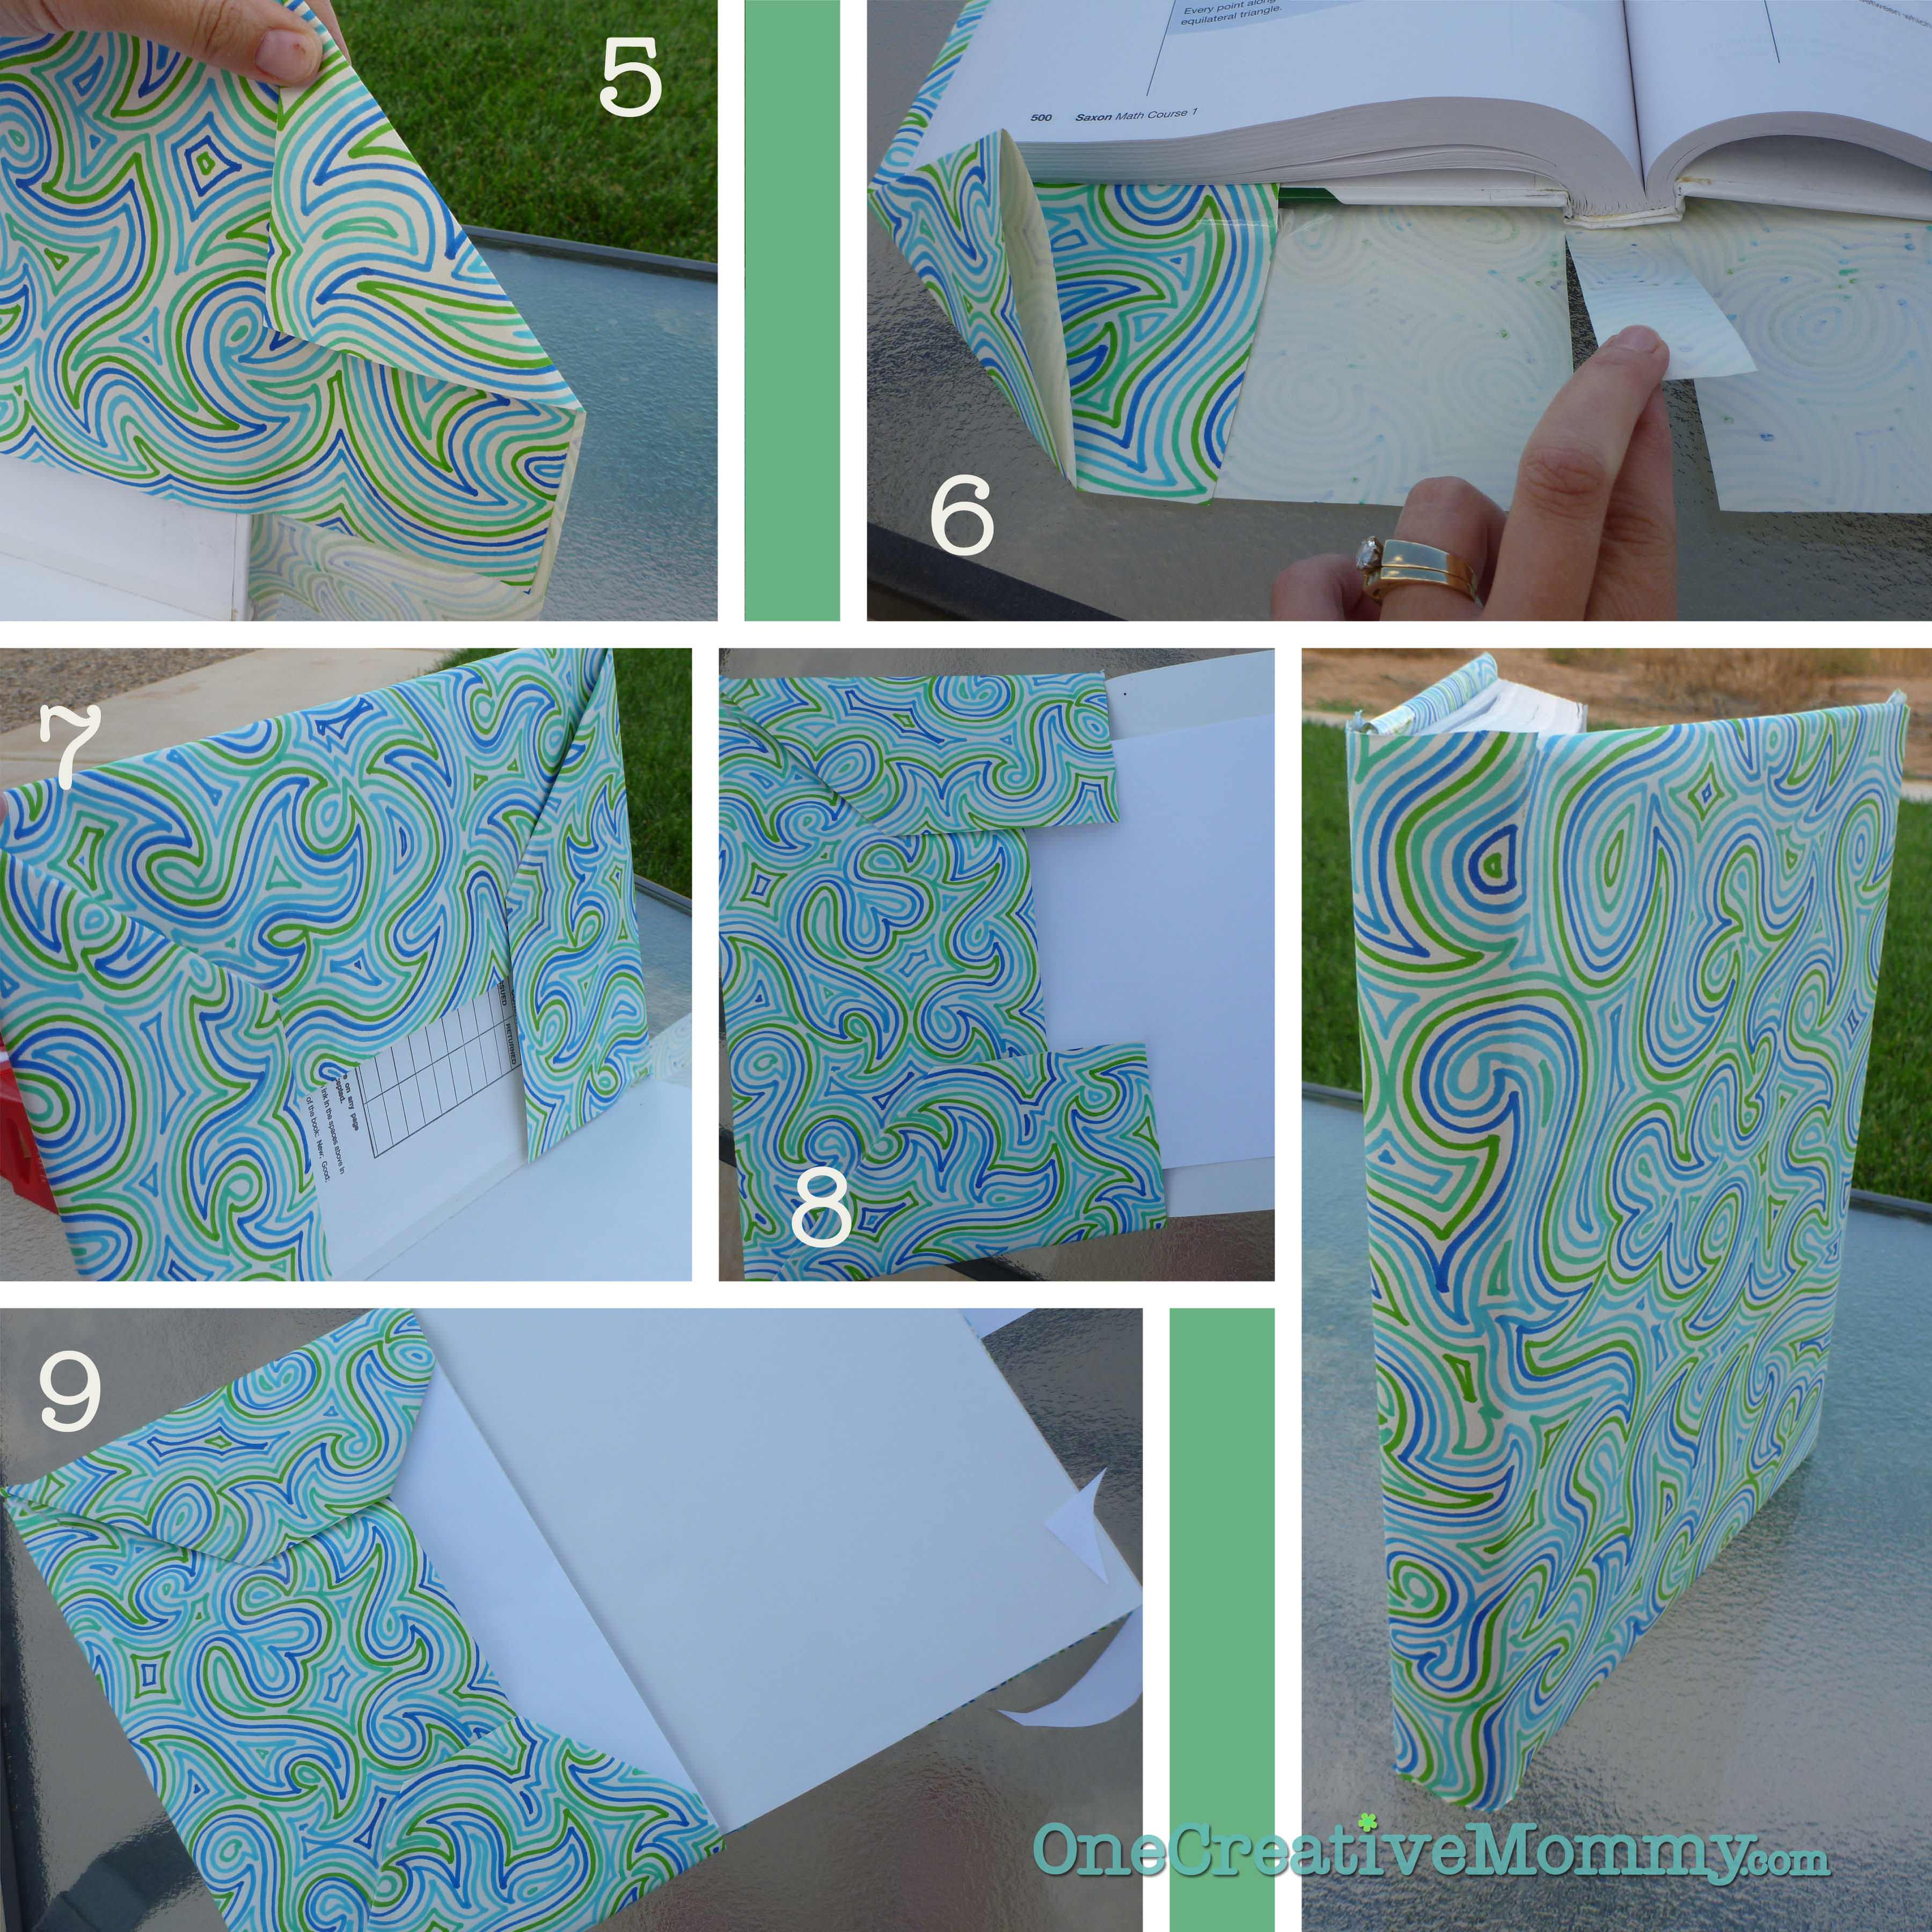 Book Cover Diy Xbox One : Diy paper book cover onecreativemommy